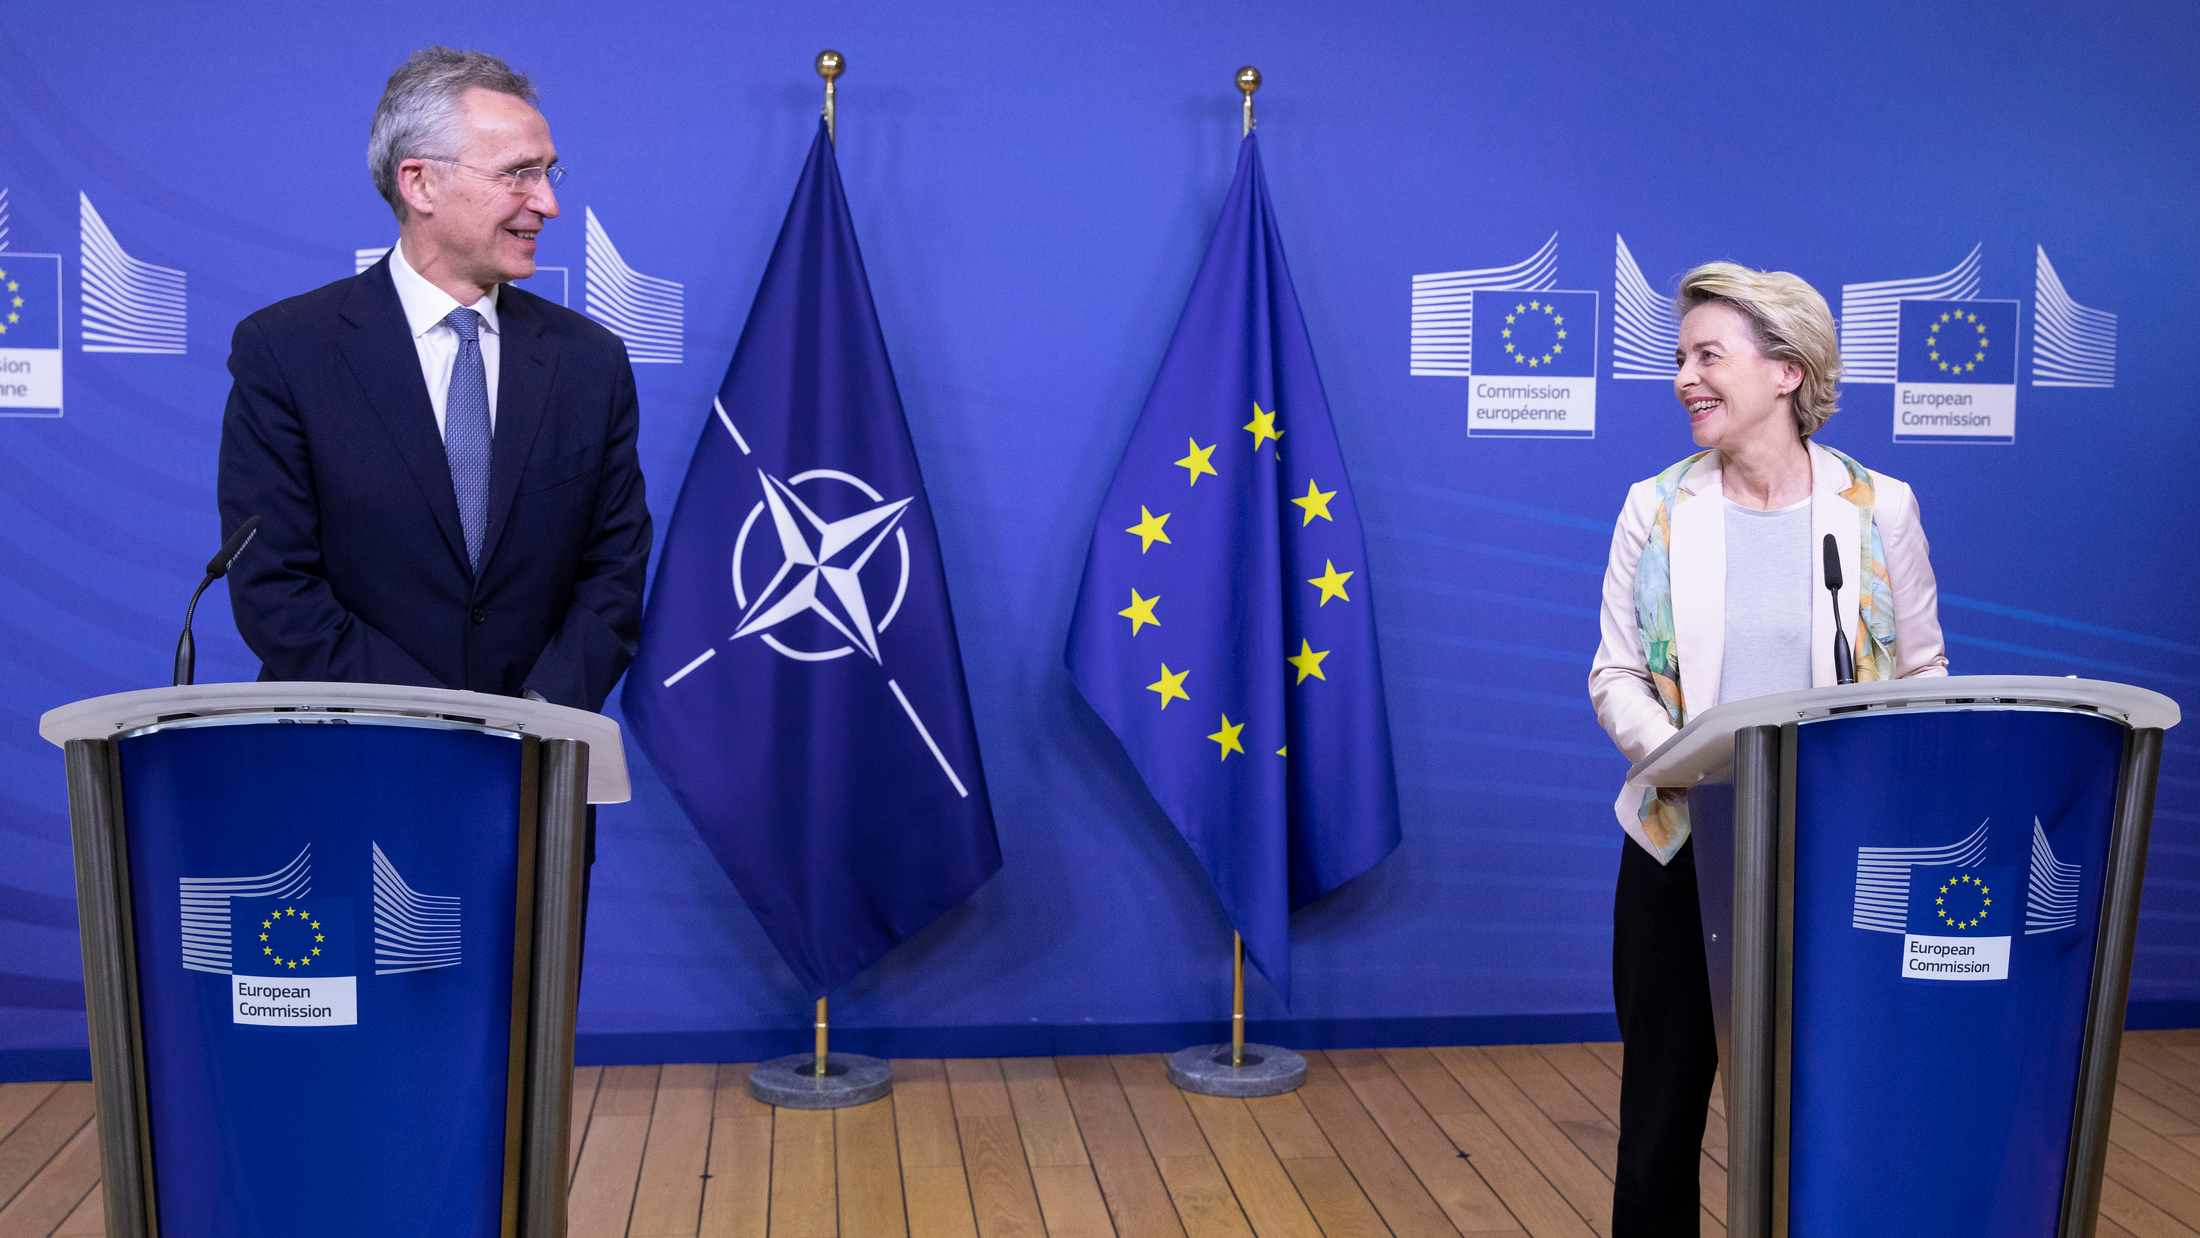 Joint press statements by NATO Secretary General Jens Stoltenberg and the President of European Commission, Ursula von der Leyen ahead of a meeting with the College of Commissioners. December 15, 2020. Credit: NATO.